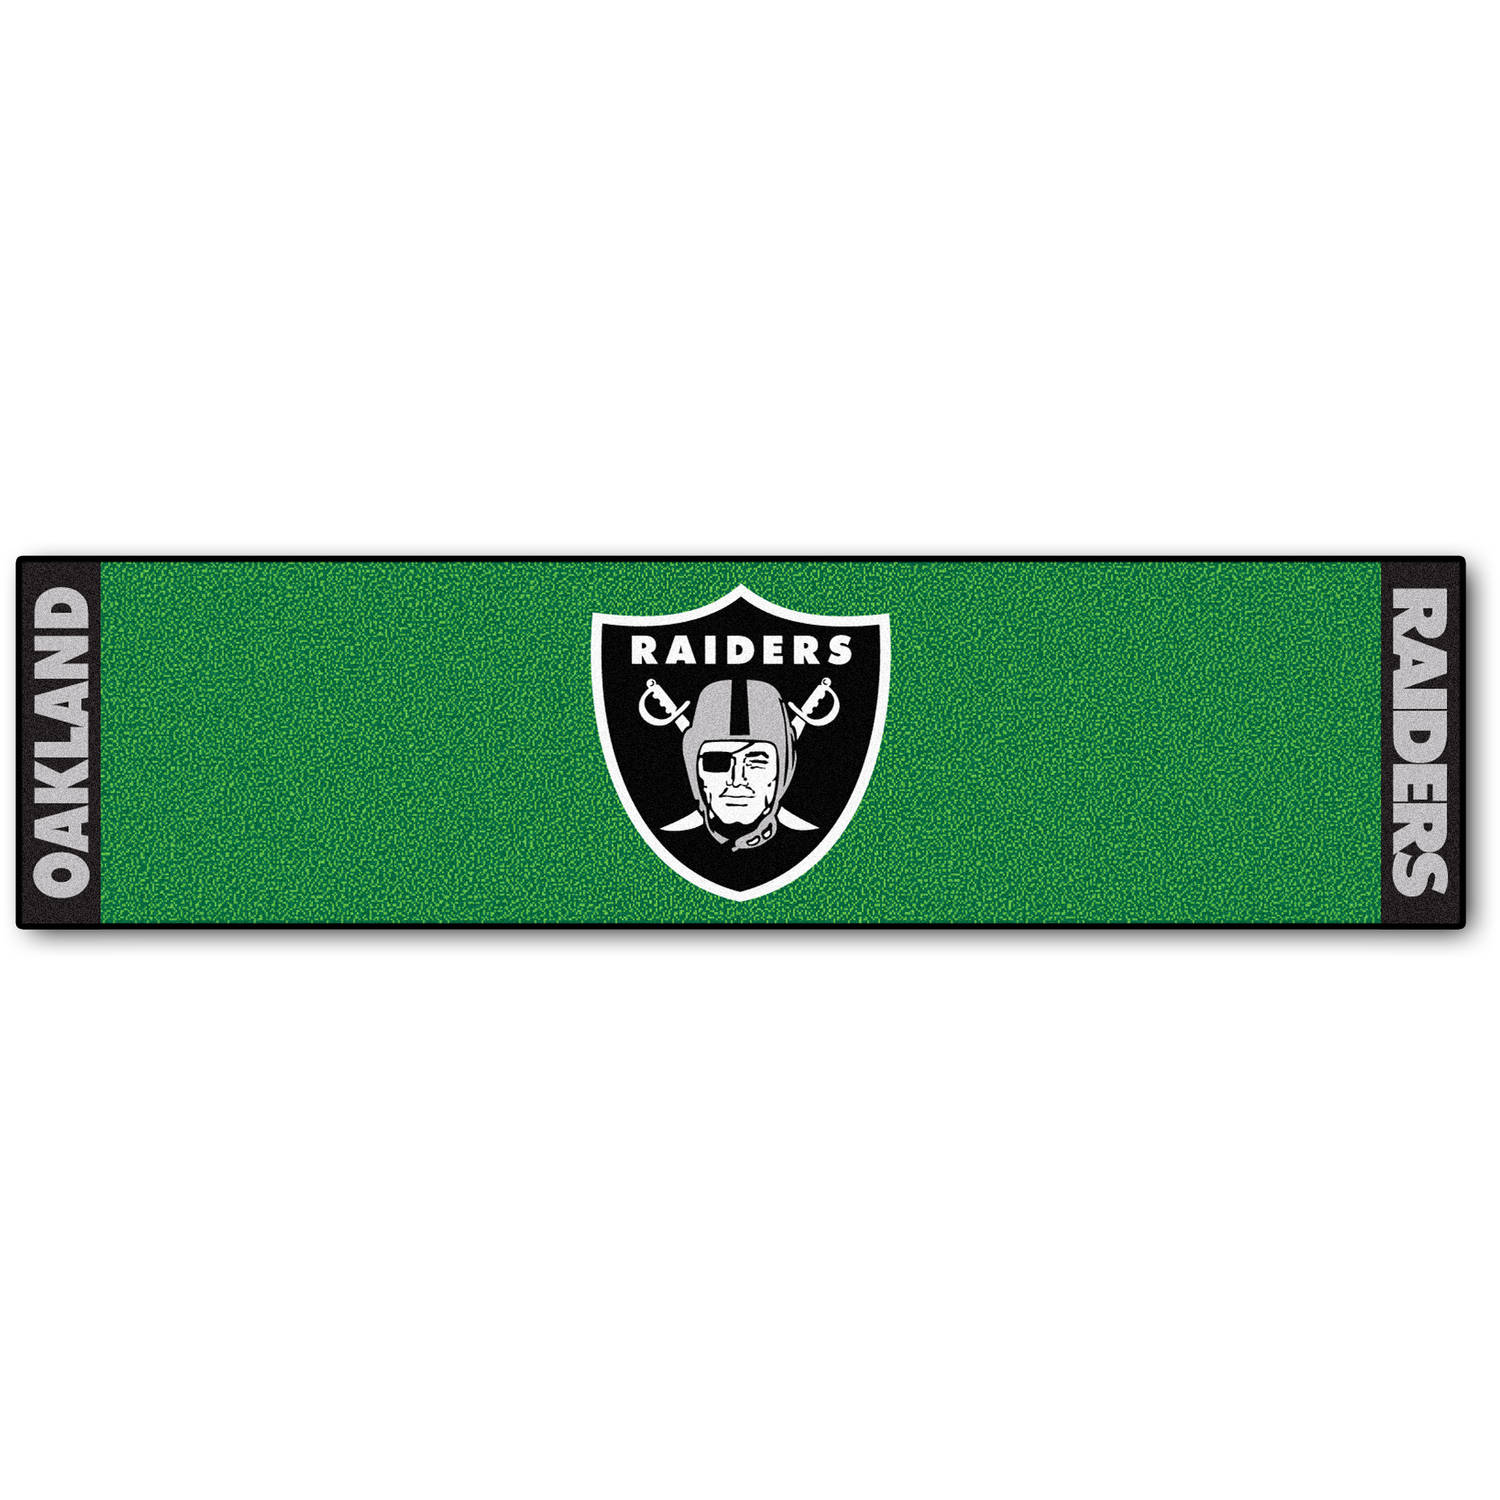 FanMats NFL Oakland Raiders Putting Green Mat